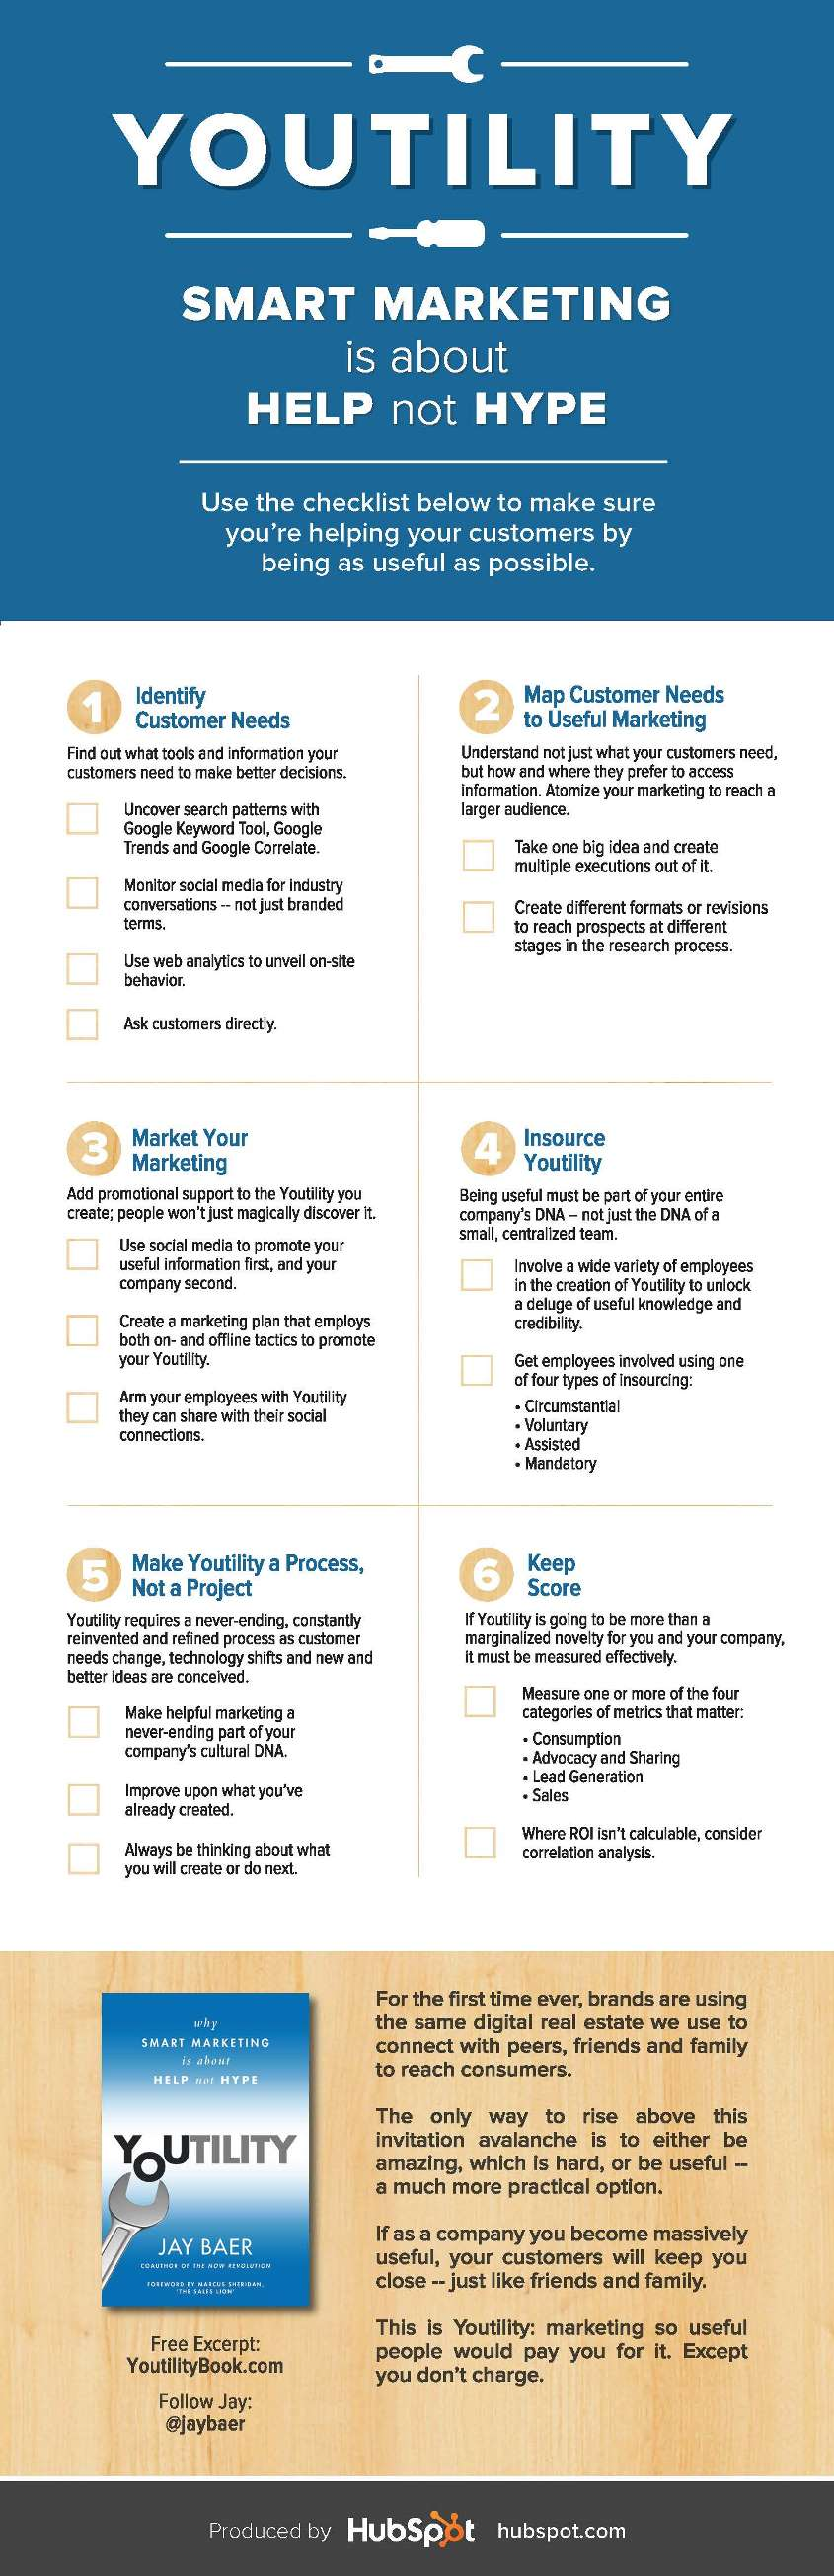 6_Steps_to_Creating_Youtility_Checklist_by_Jay_Baer_HubSpot